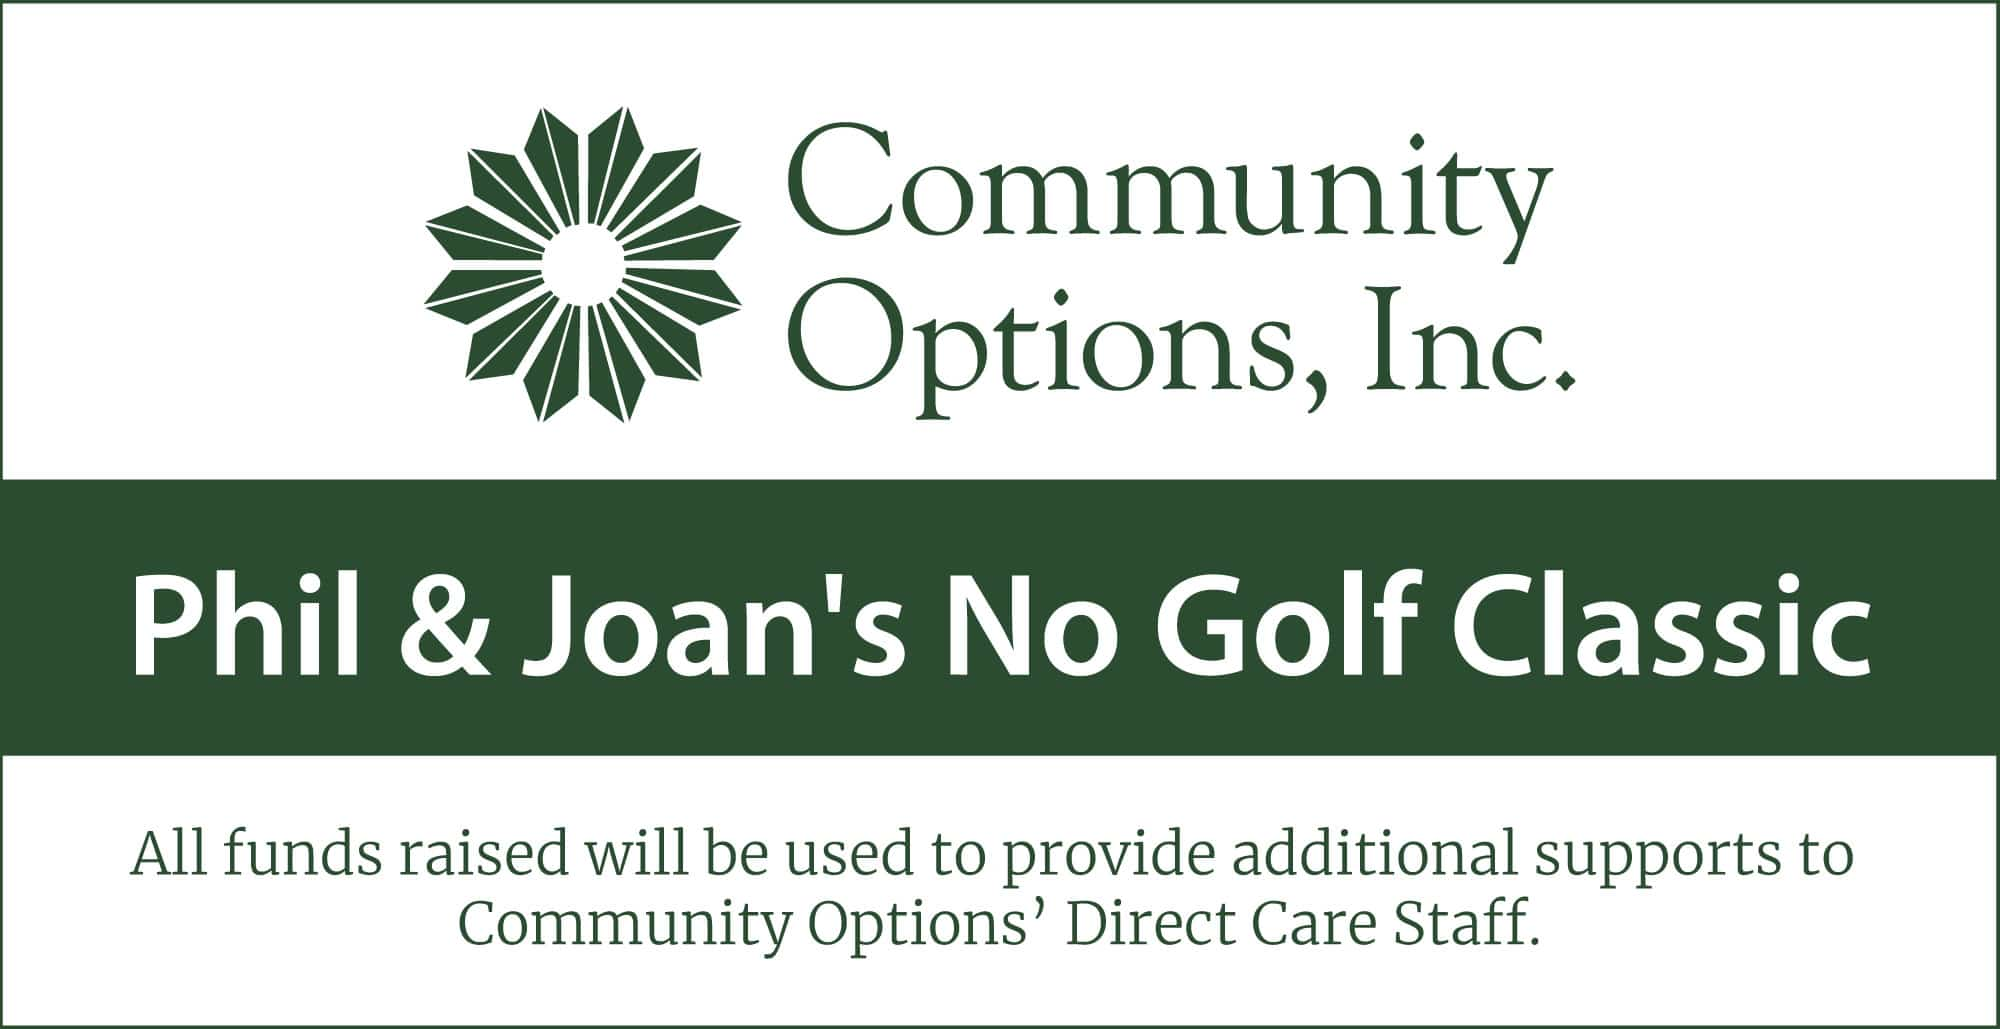 Phil and Joan's No Golf Classic. All funds raised will be used to provide additional supports to Community Options' Direct Care Staff.